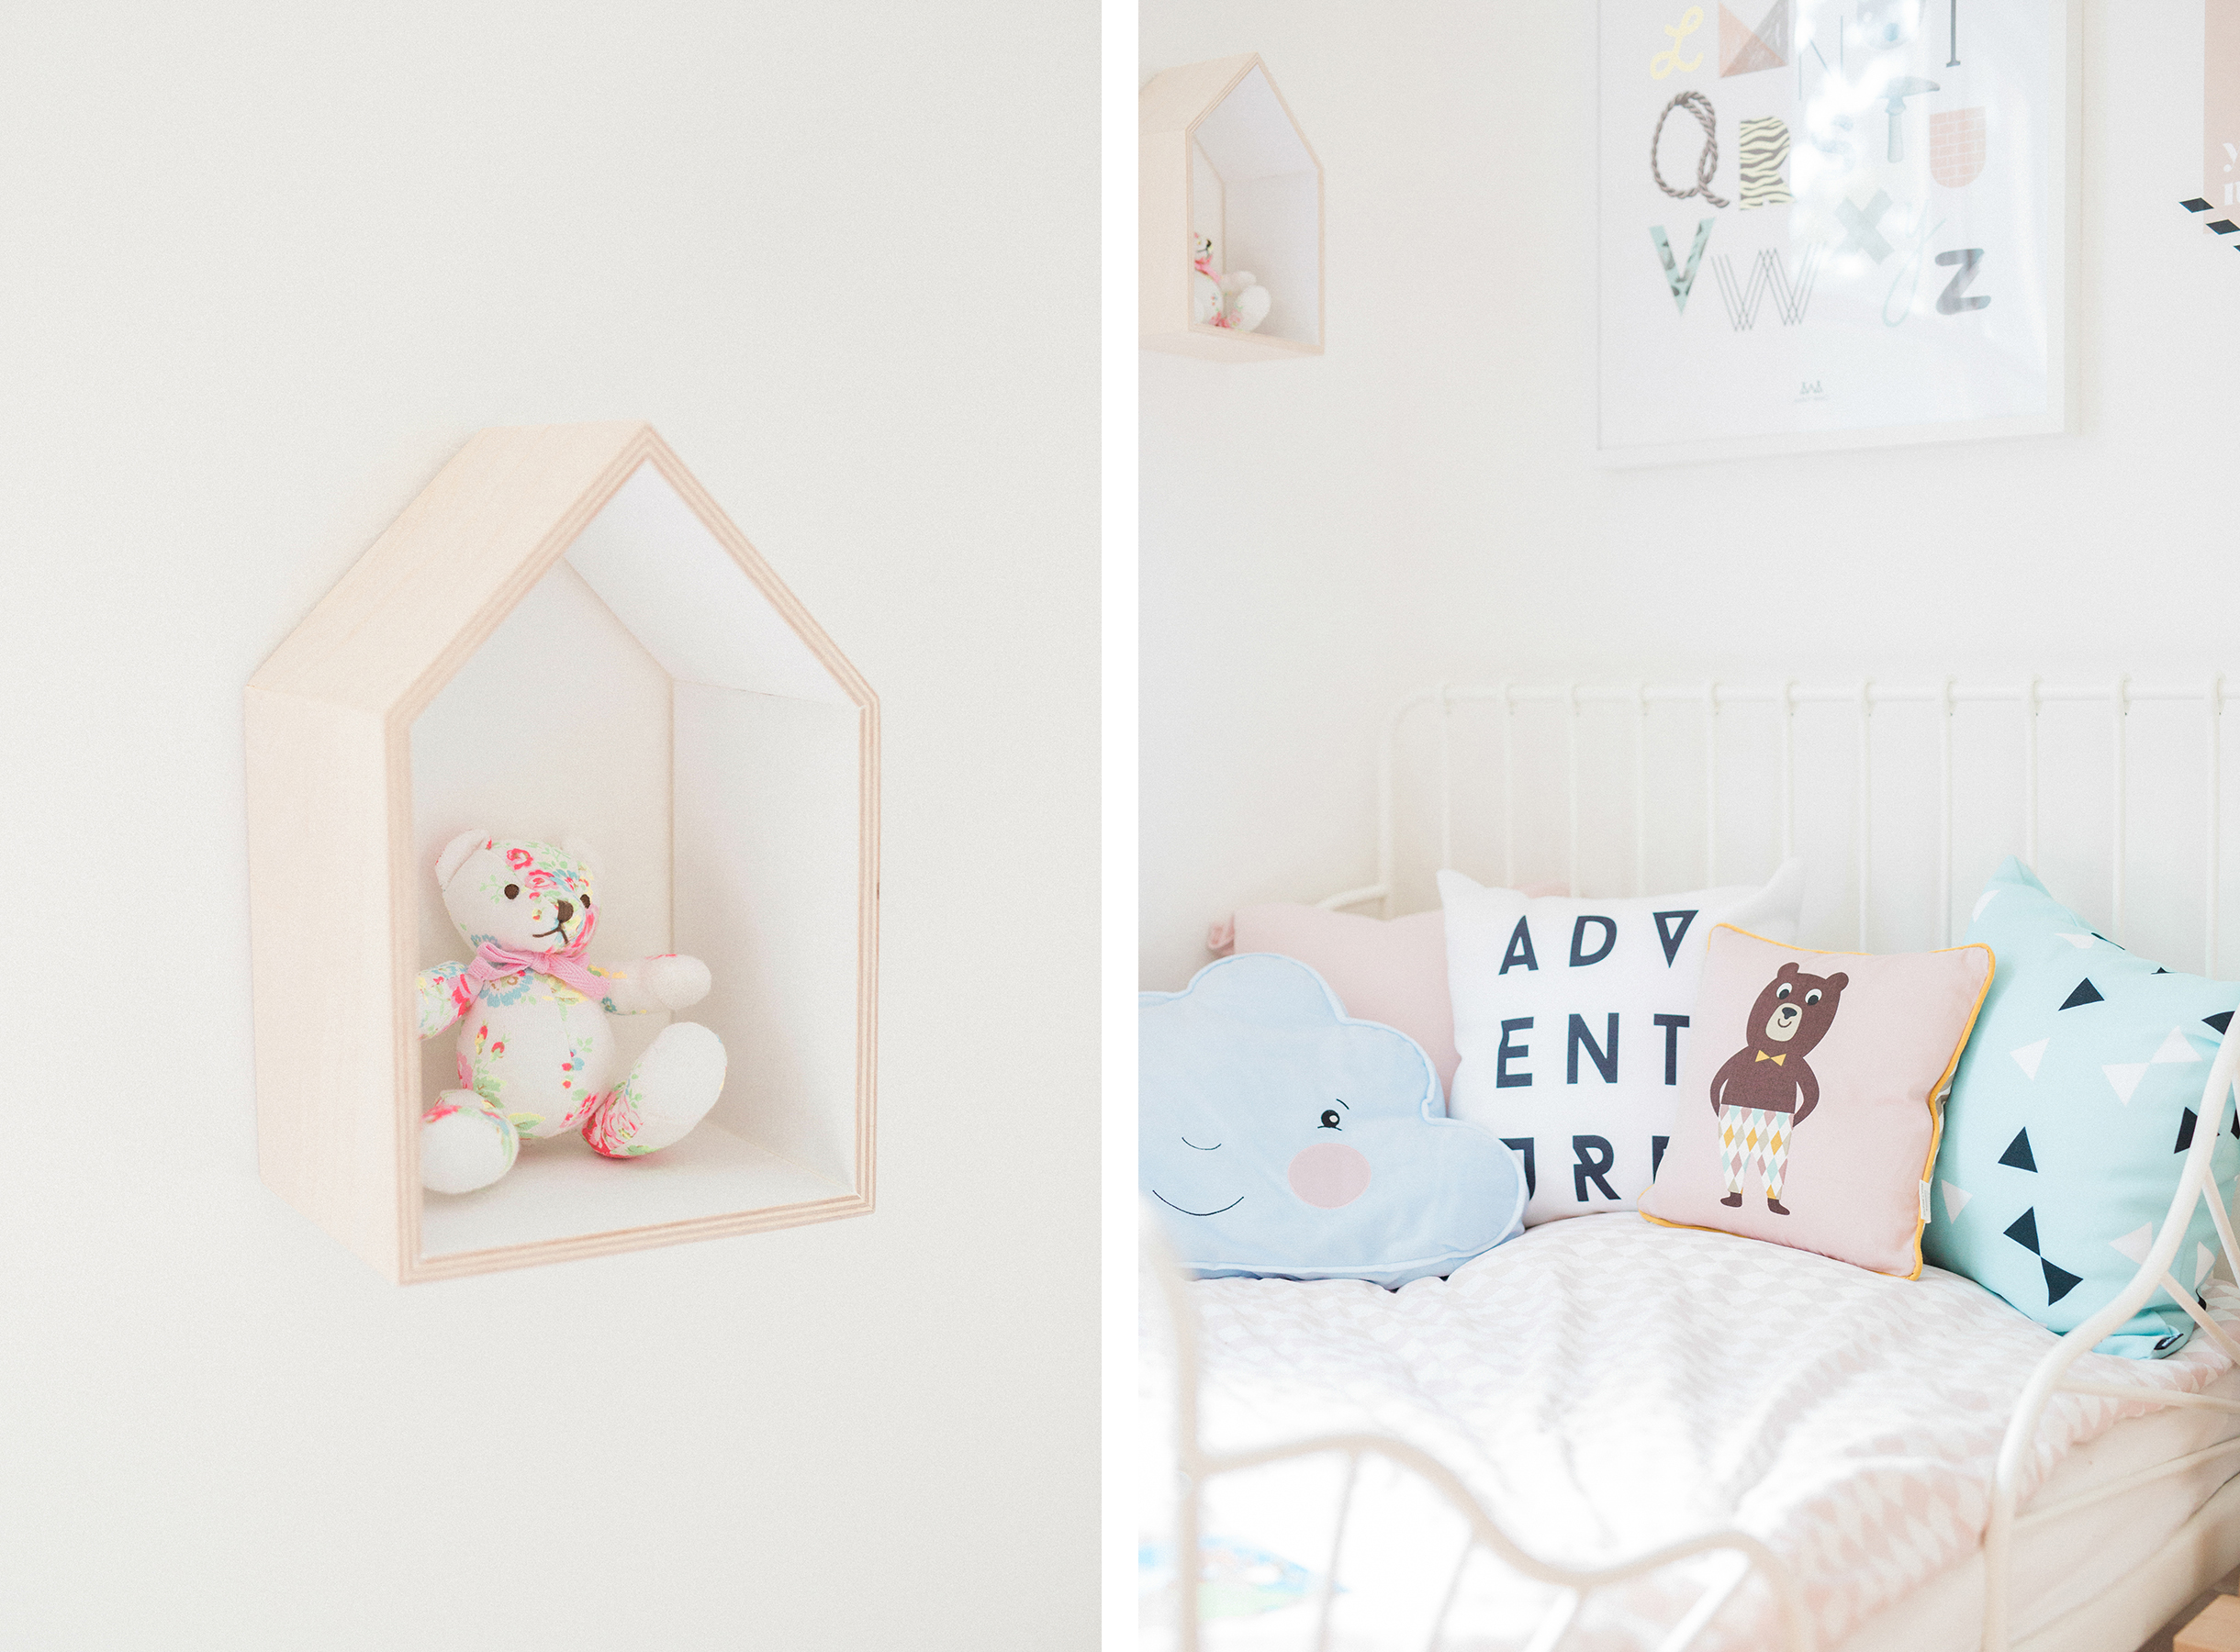 Scandinavian shared kids room - light-filled, pastel baby + toddler playroom - Ikea Minnen bed + Etsy house wall shelf | Happy Grey Lucky